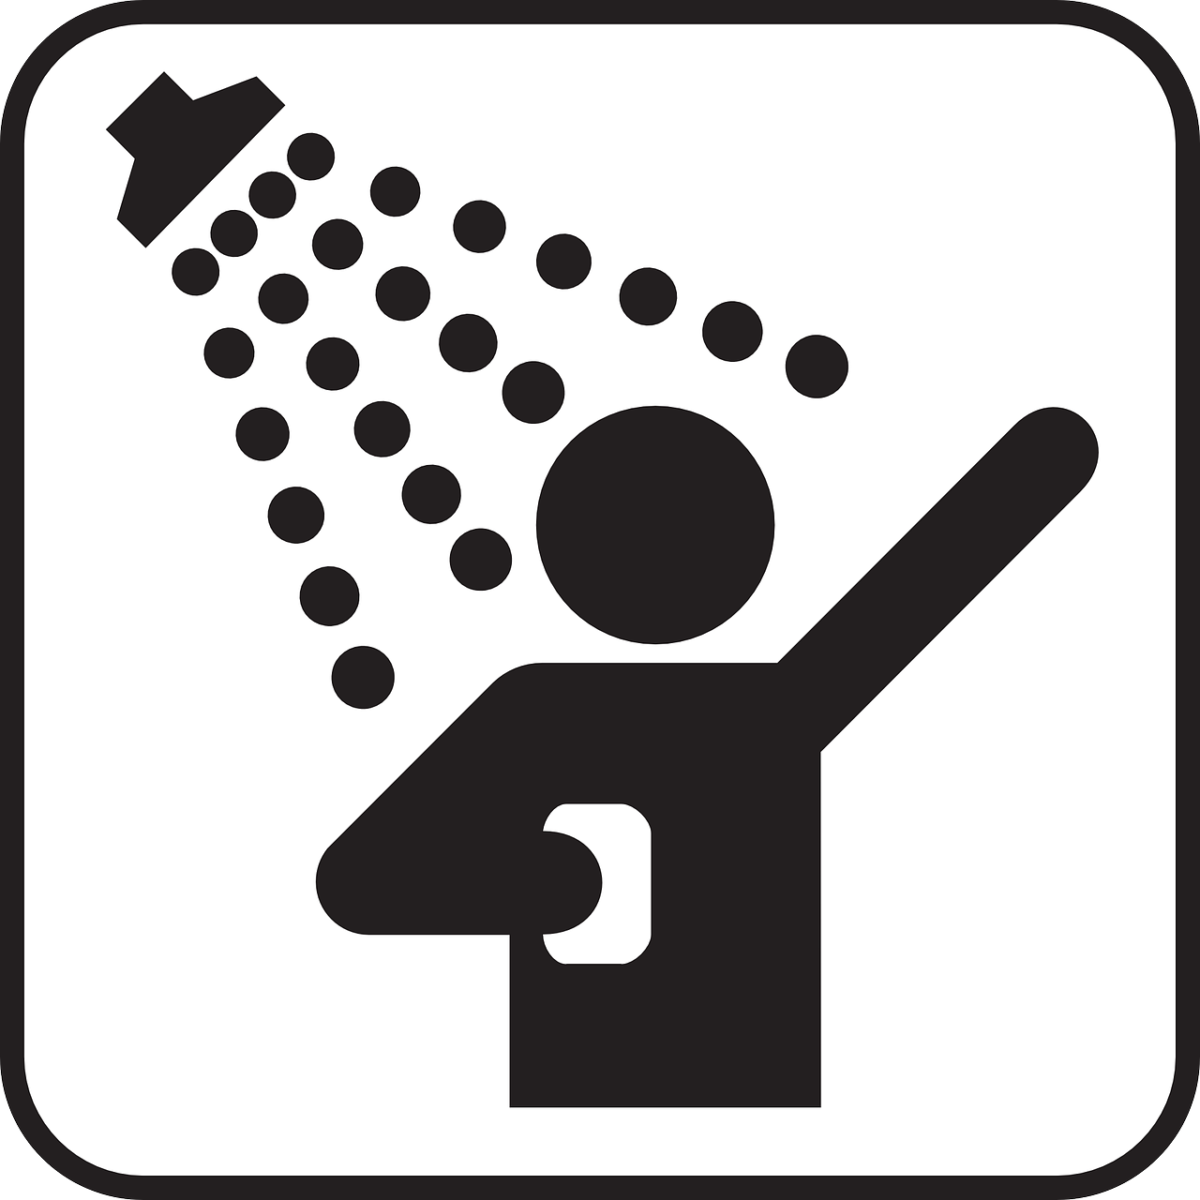 Black and white graphic of someone showering.